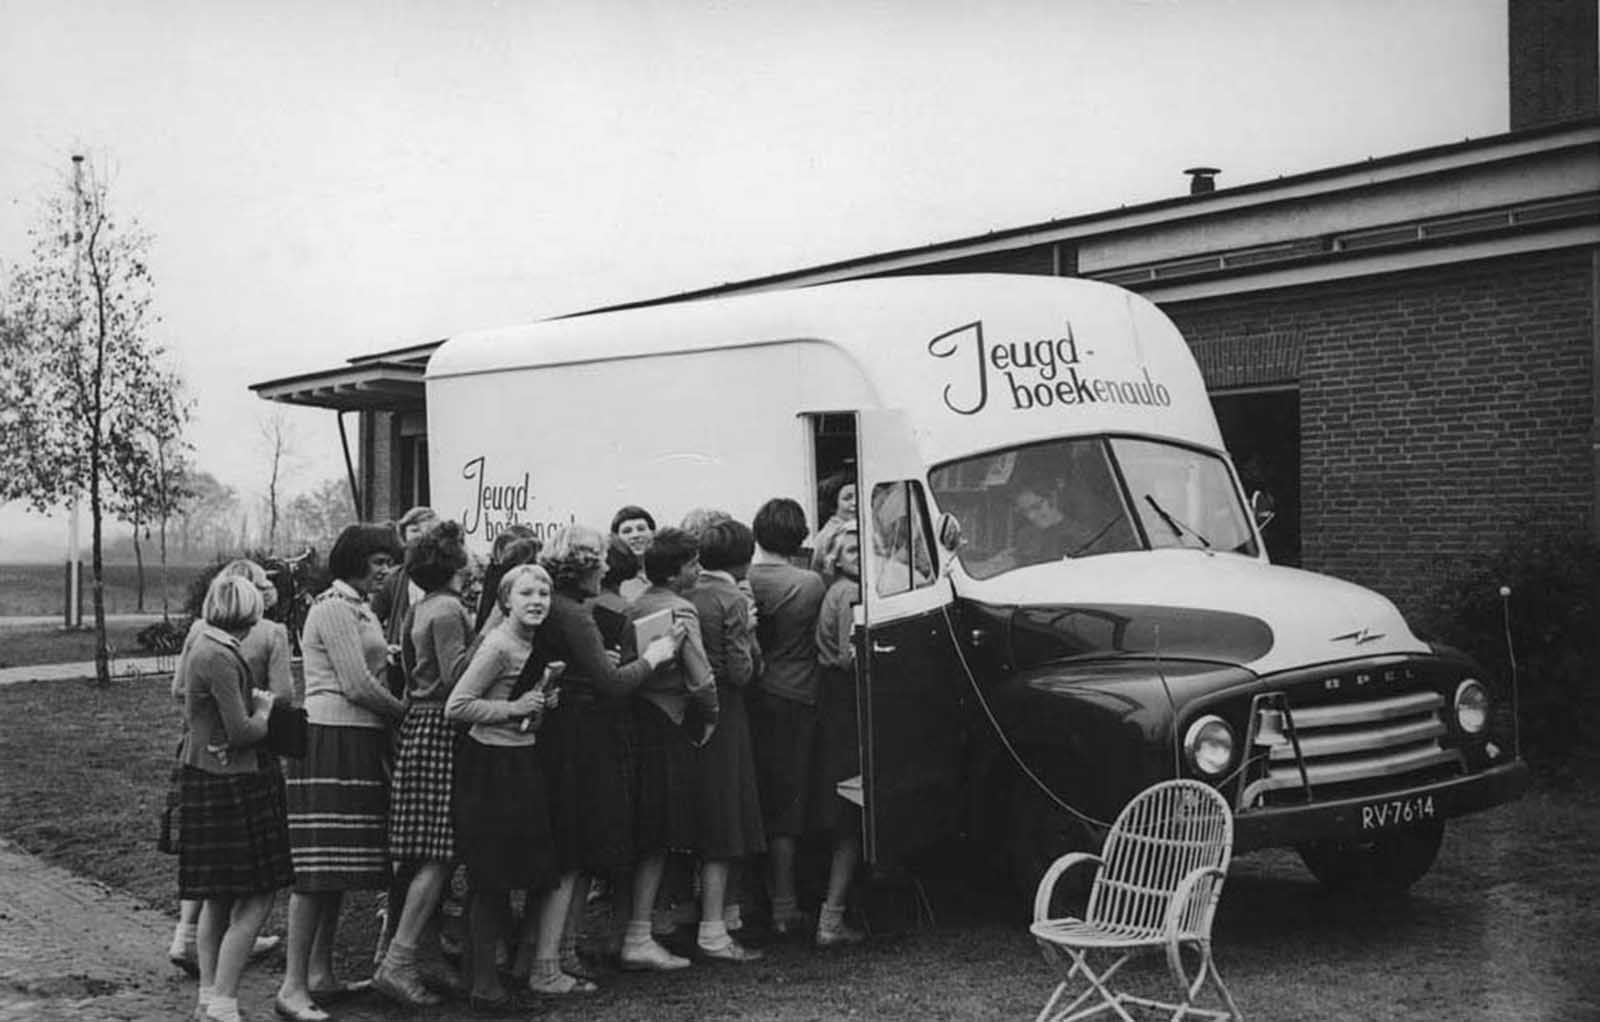 An impatient queue for a Dutch bookmobile.